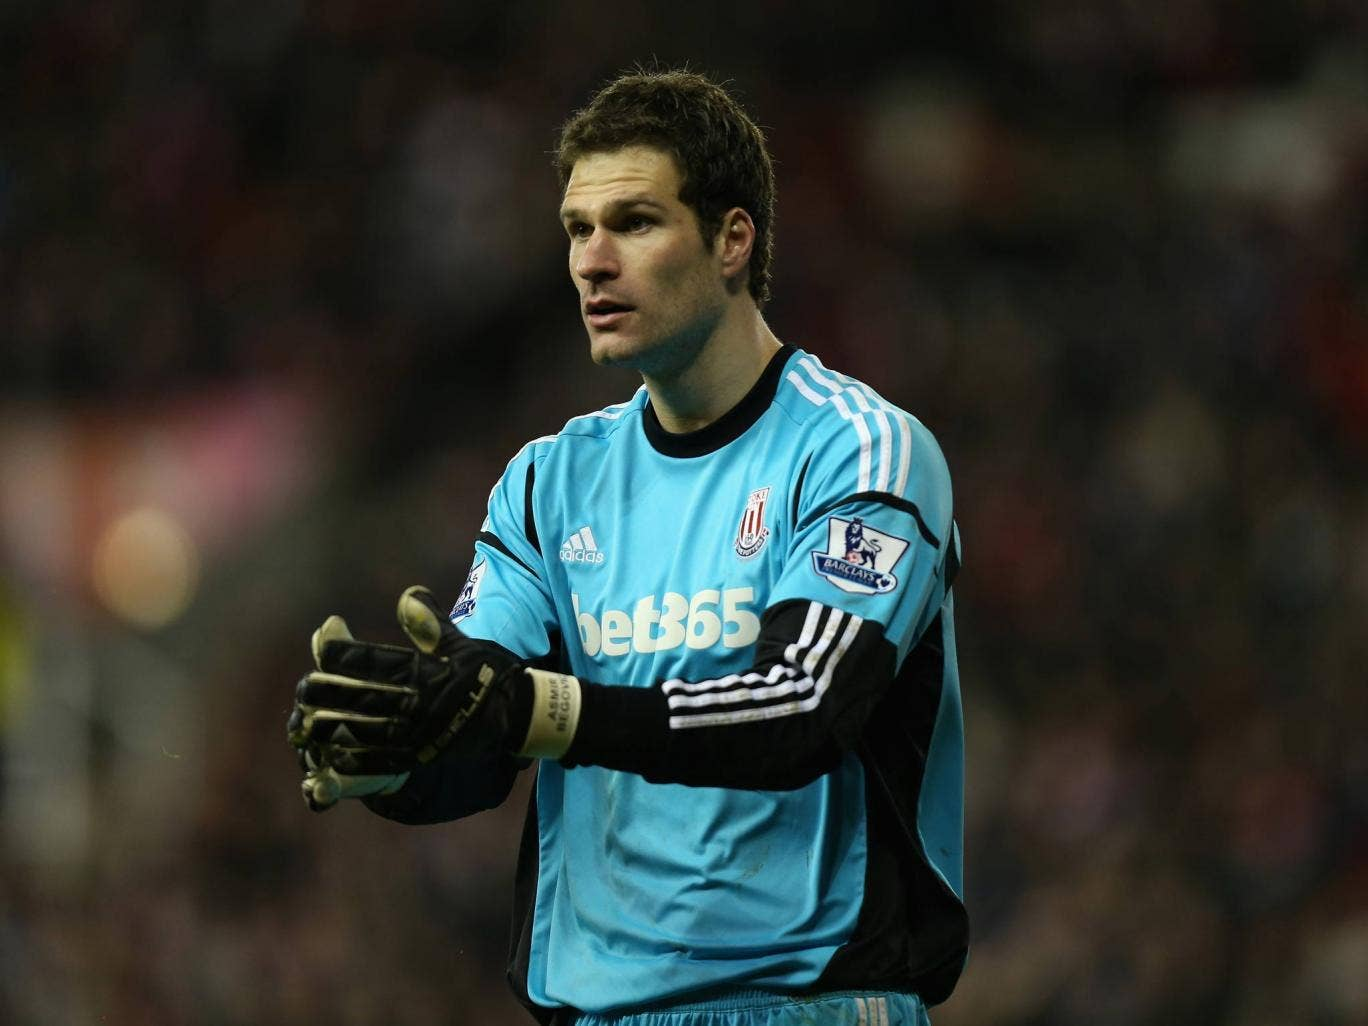 <b>Asmir Begovic</b><br/> Stoke's defence has been among the most impressive in the Premier League this term, and the man standing between the sticks hasn't gone unnoticed at Old Trafford according to reports. However, Stoke's £15m valuation of the 25-yea